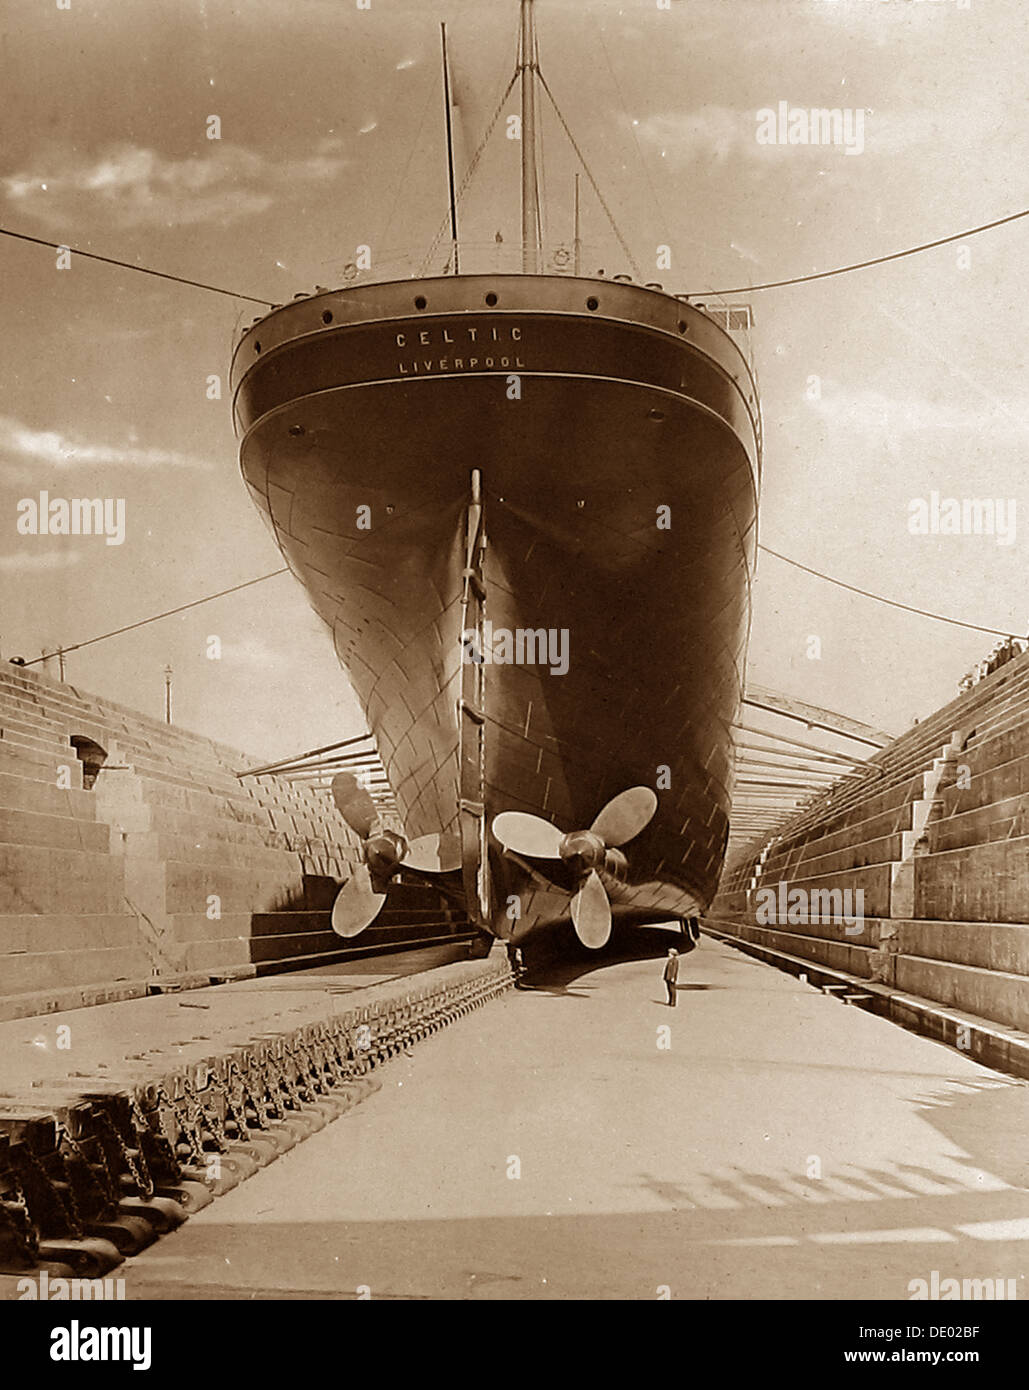 White Star Line RMS Celtic in dry dock early 1900s - Stock Image